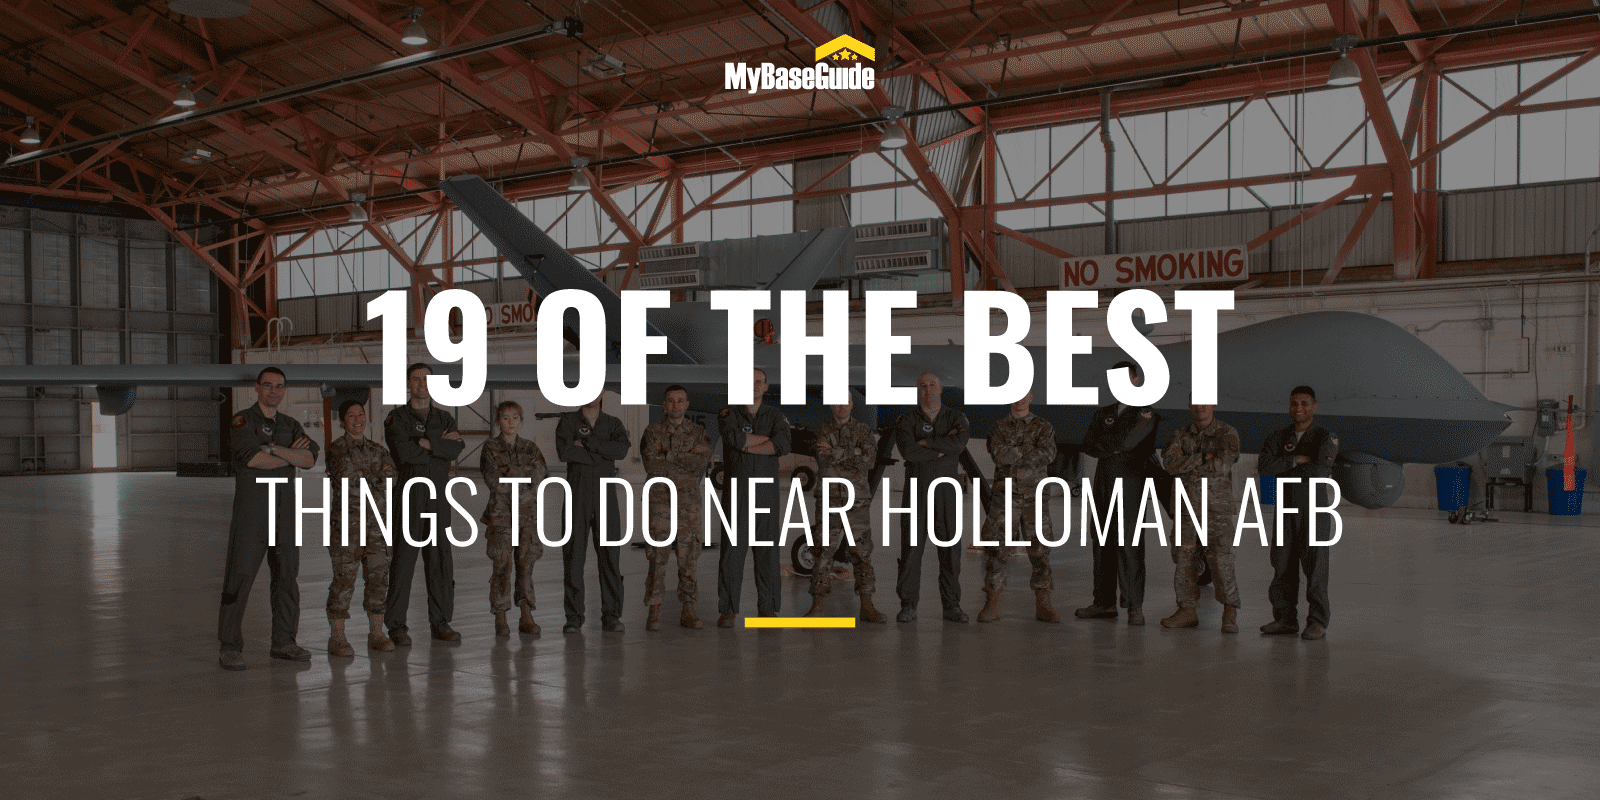 19 Of the Best Things to Do Near Holloman AFB